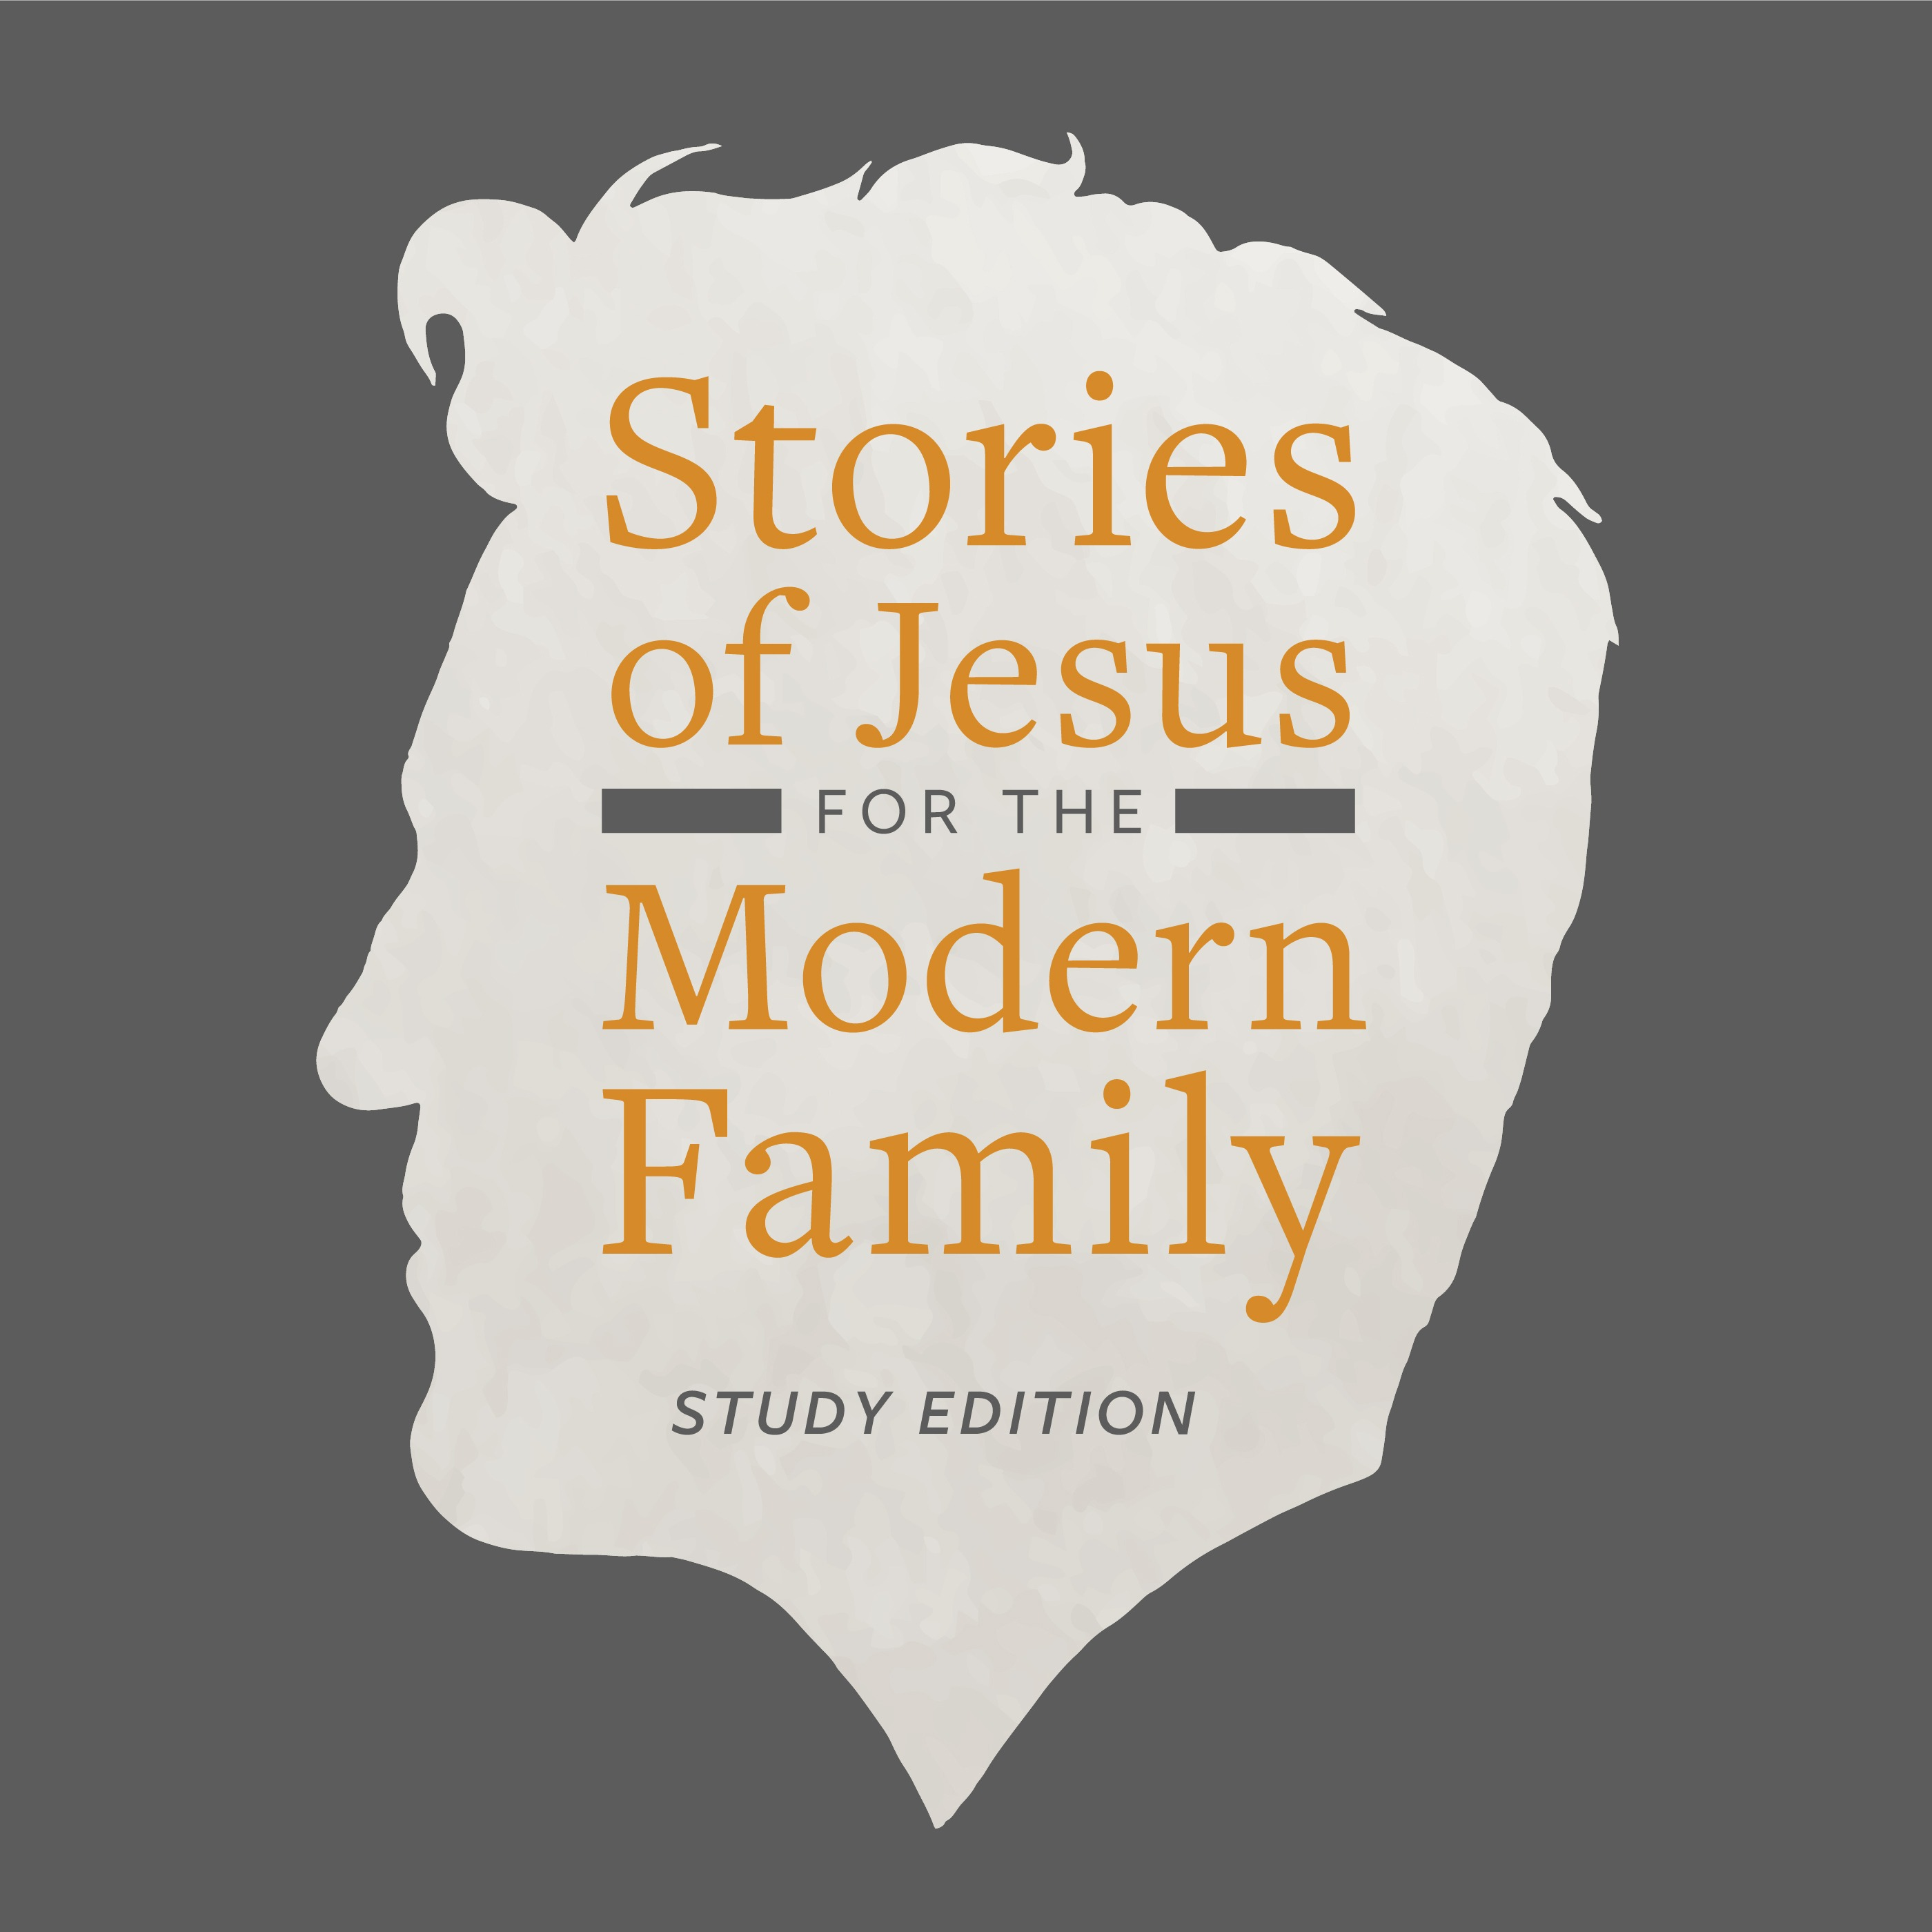 Stories of Jesus for the Modern Family - Study Edition